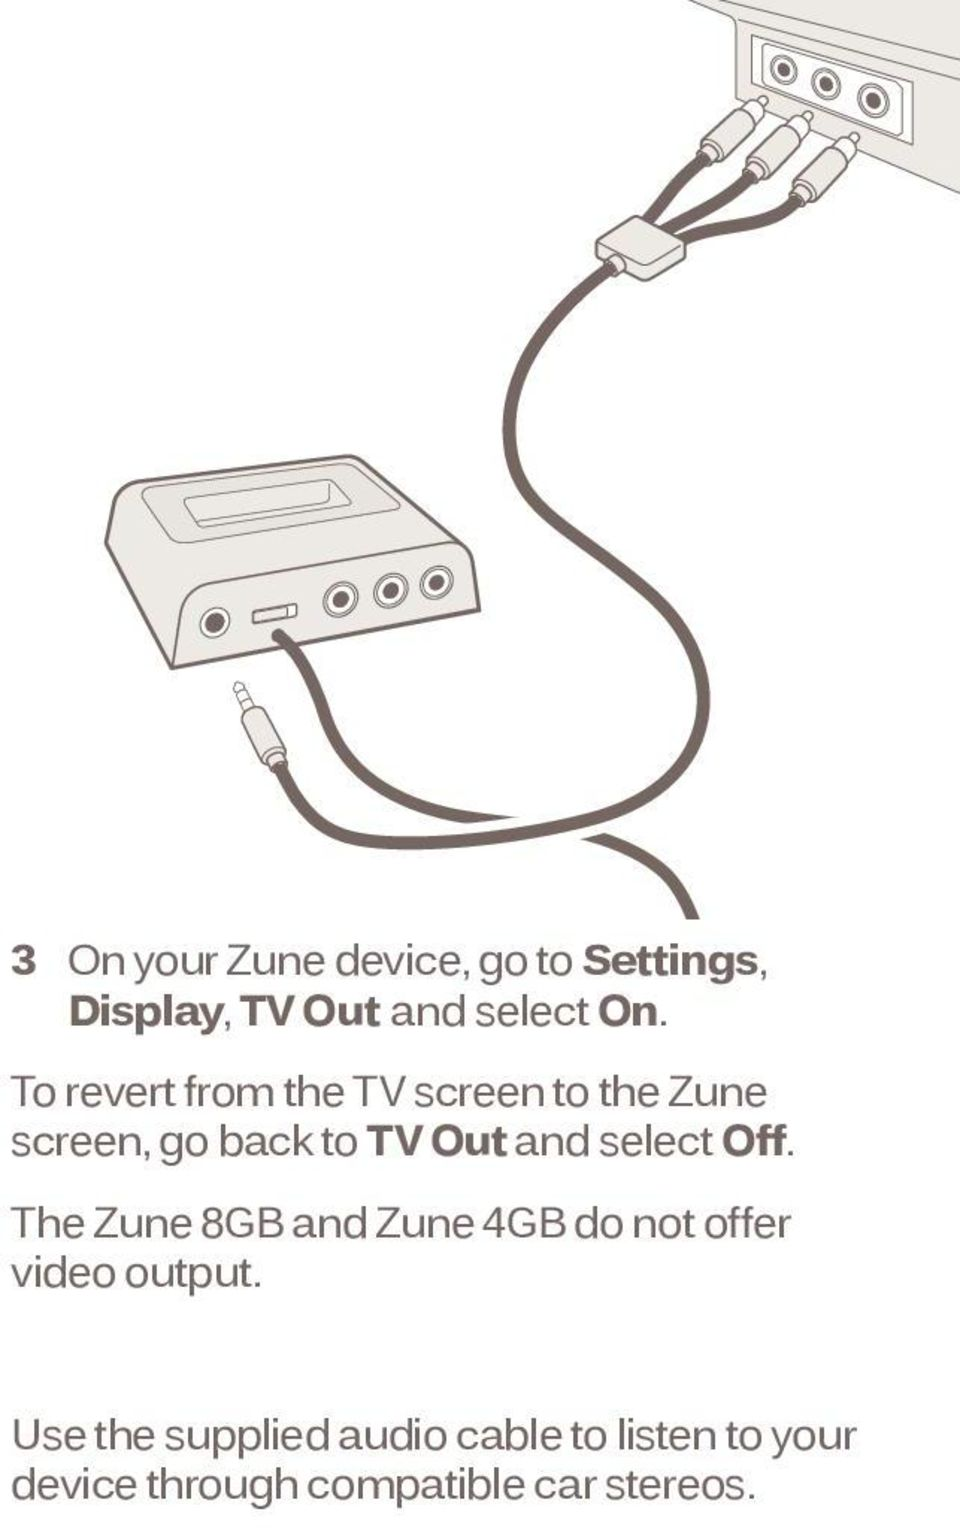 select Off. The Zune 8GB and Zune 4GB do not offer video output.